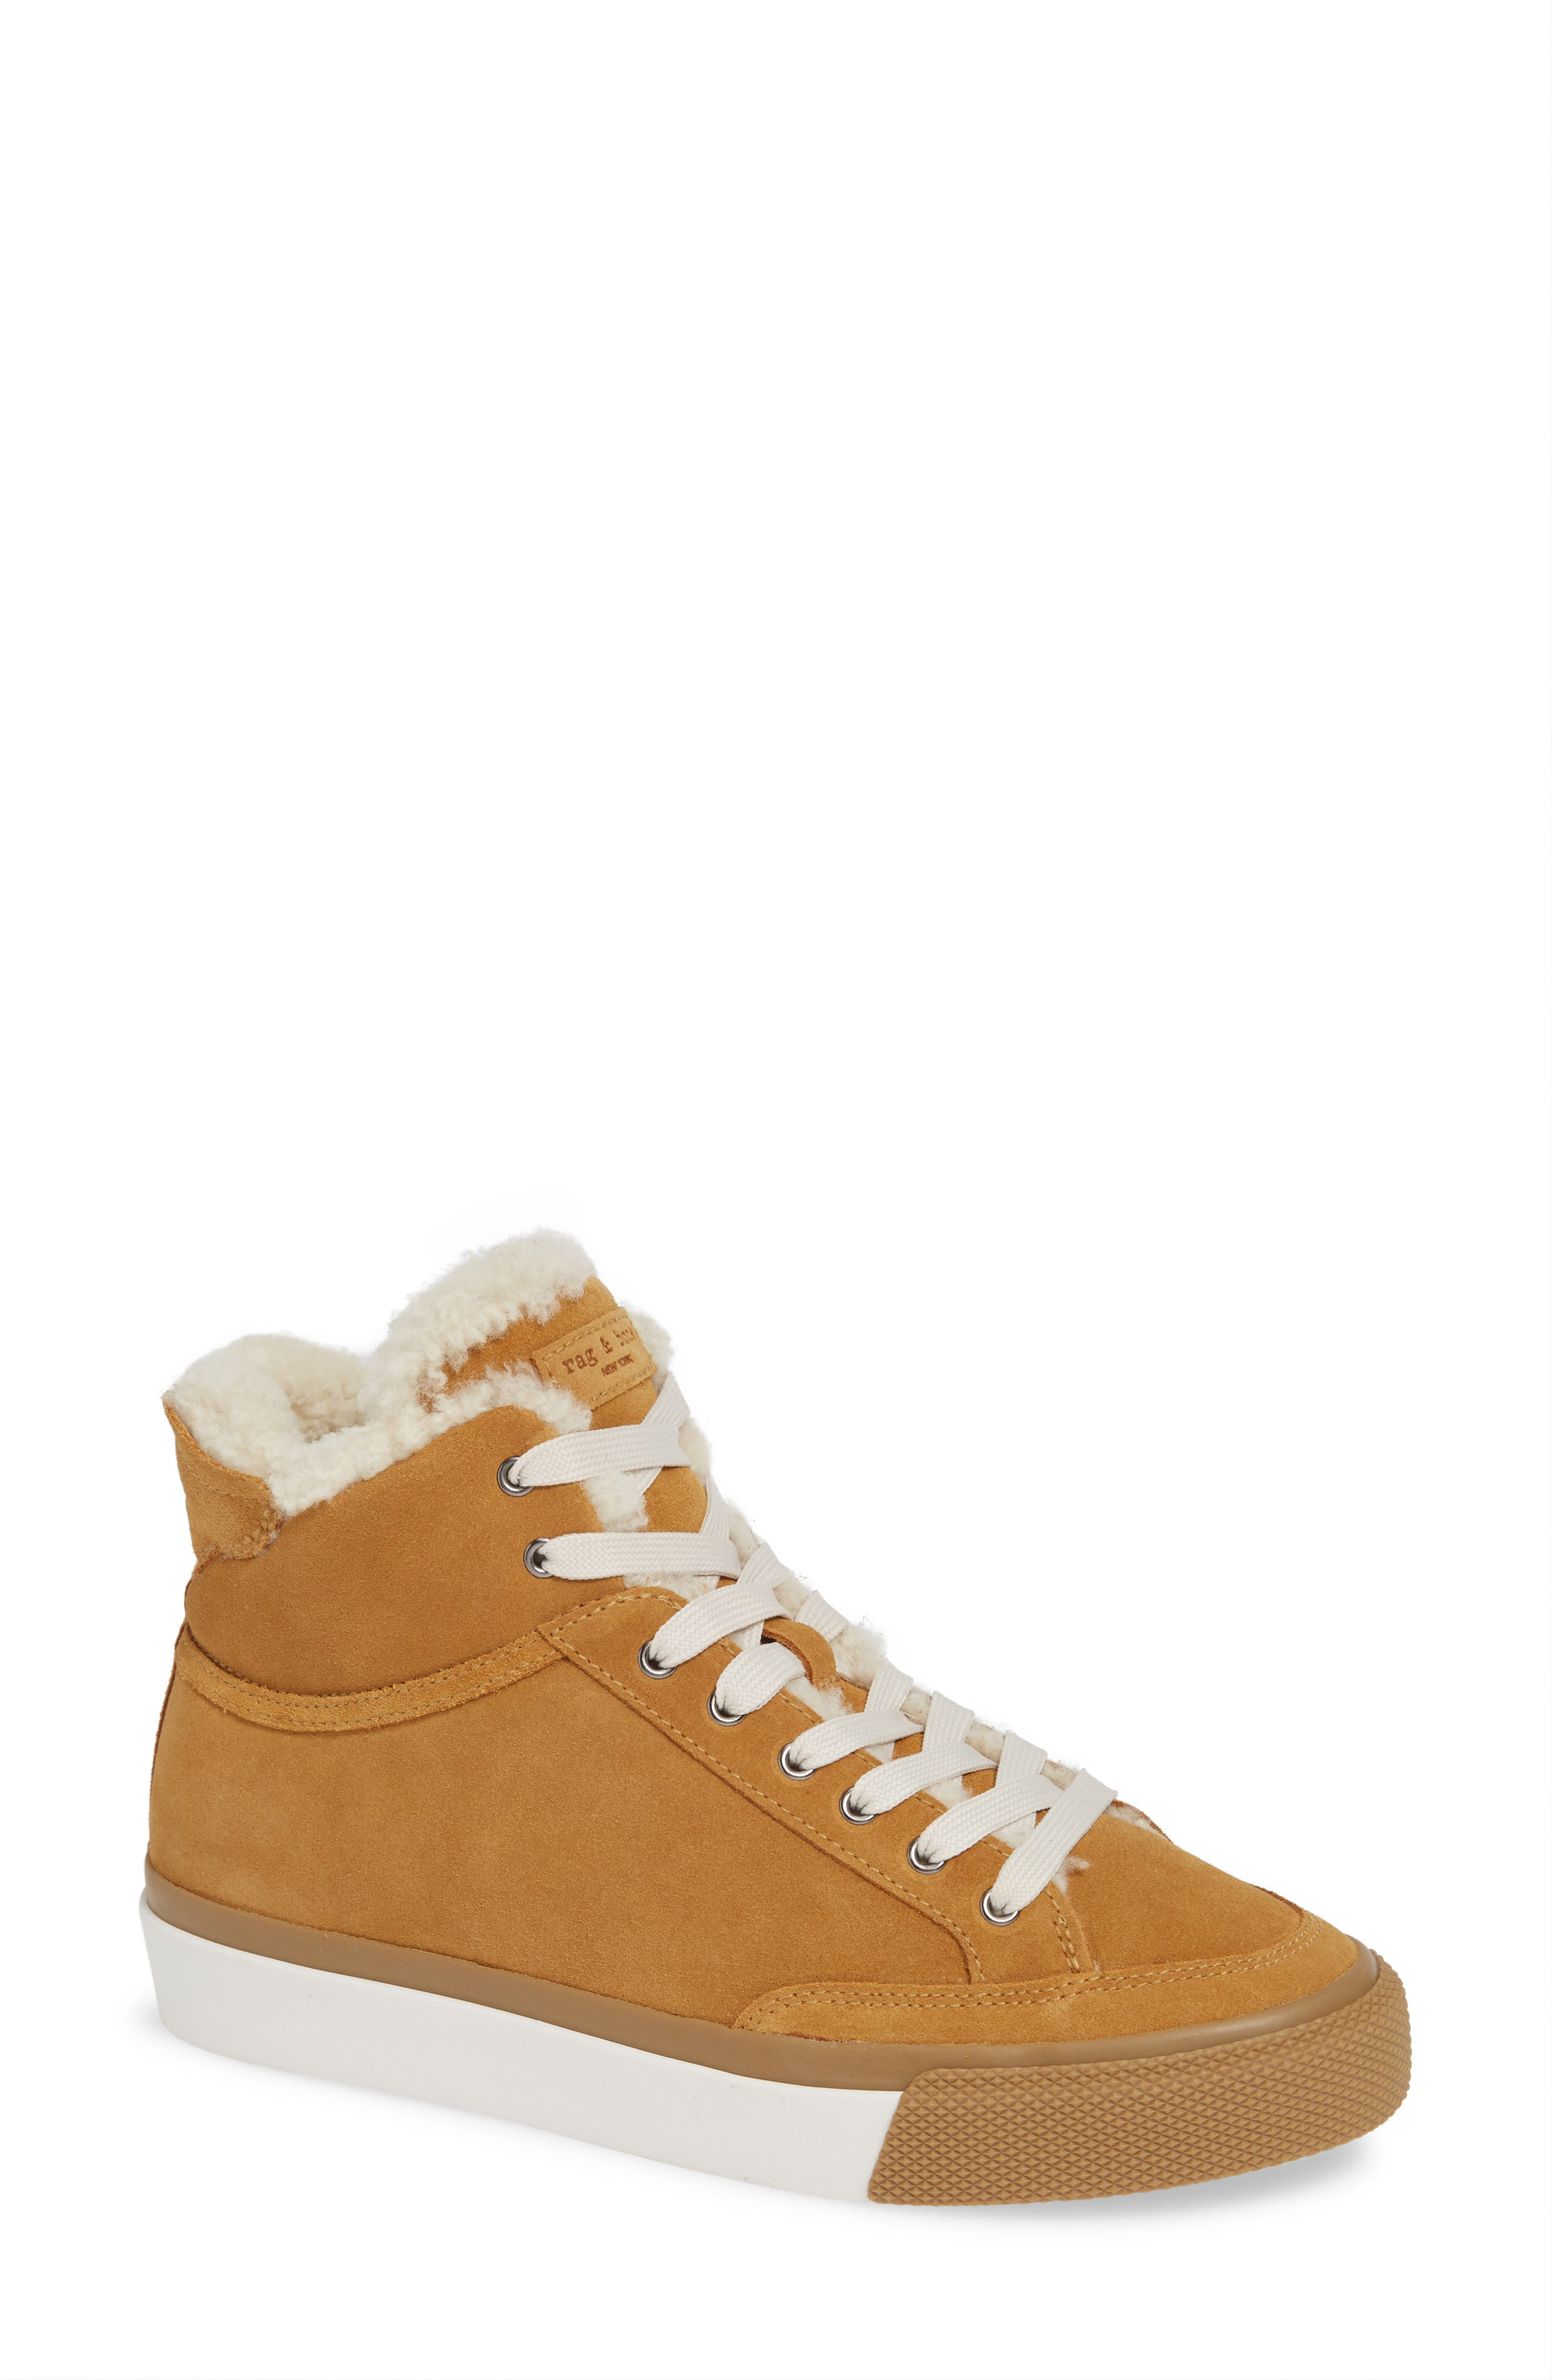 Army High Top Sneaker, Main, color, OAK SUEDE